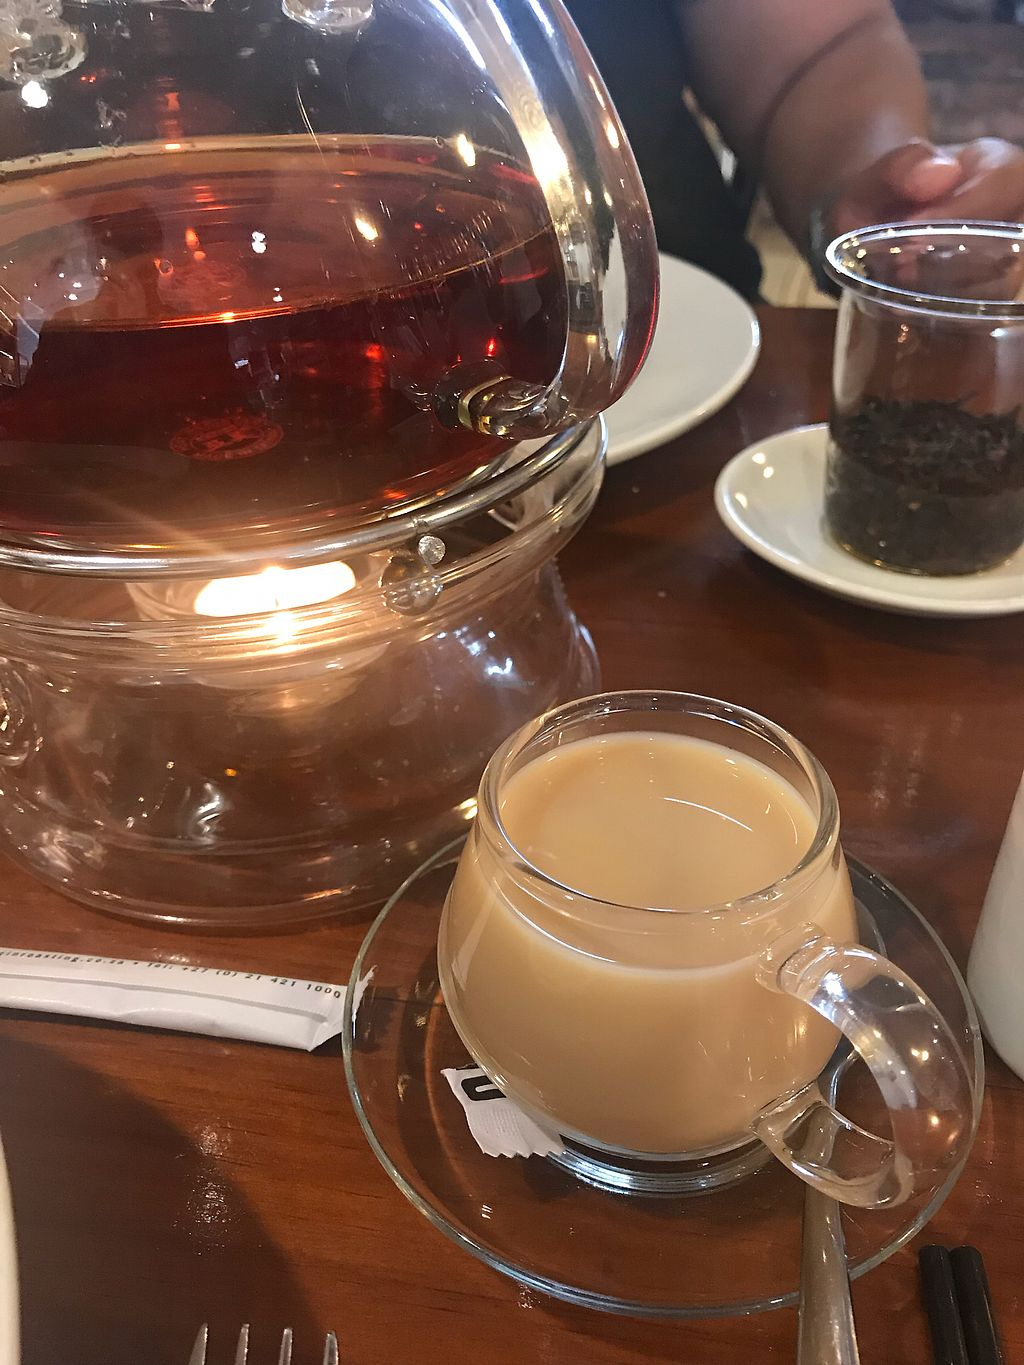 "Photo of O'ways Teacafe  by <a href=""/members/profile/Jasonleg"">Jasonleg</a> <br/>Amazing chai tea <br/> December 16, 2017  - <a href='/contact/abuse/image/29652/336113'>Report</a>"